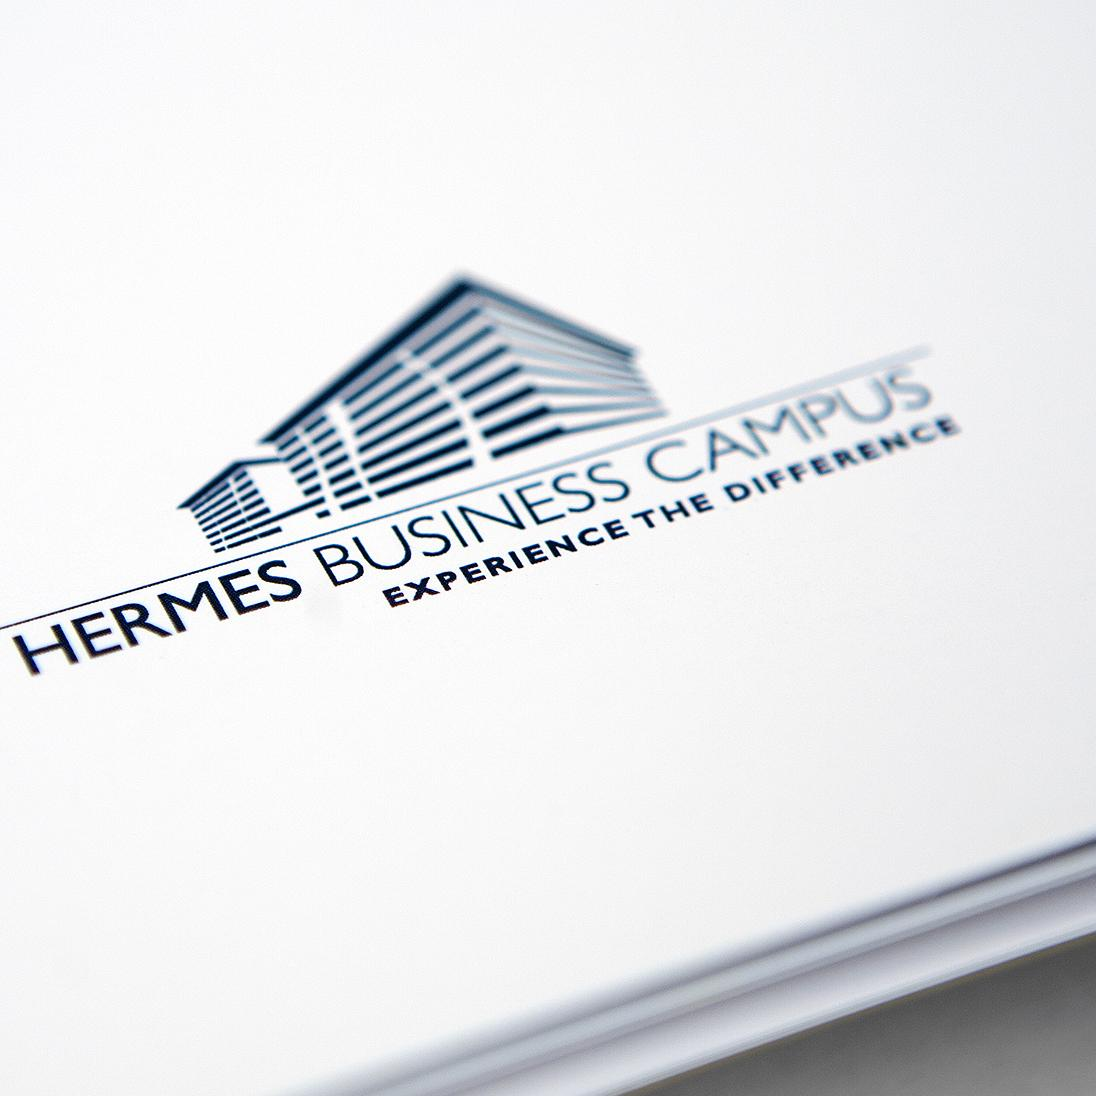 Atenor - Hermes Business Campus